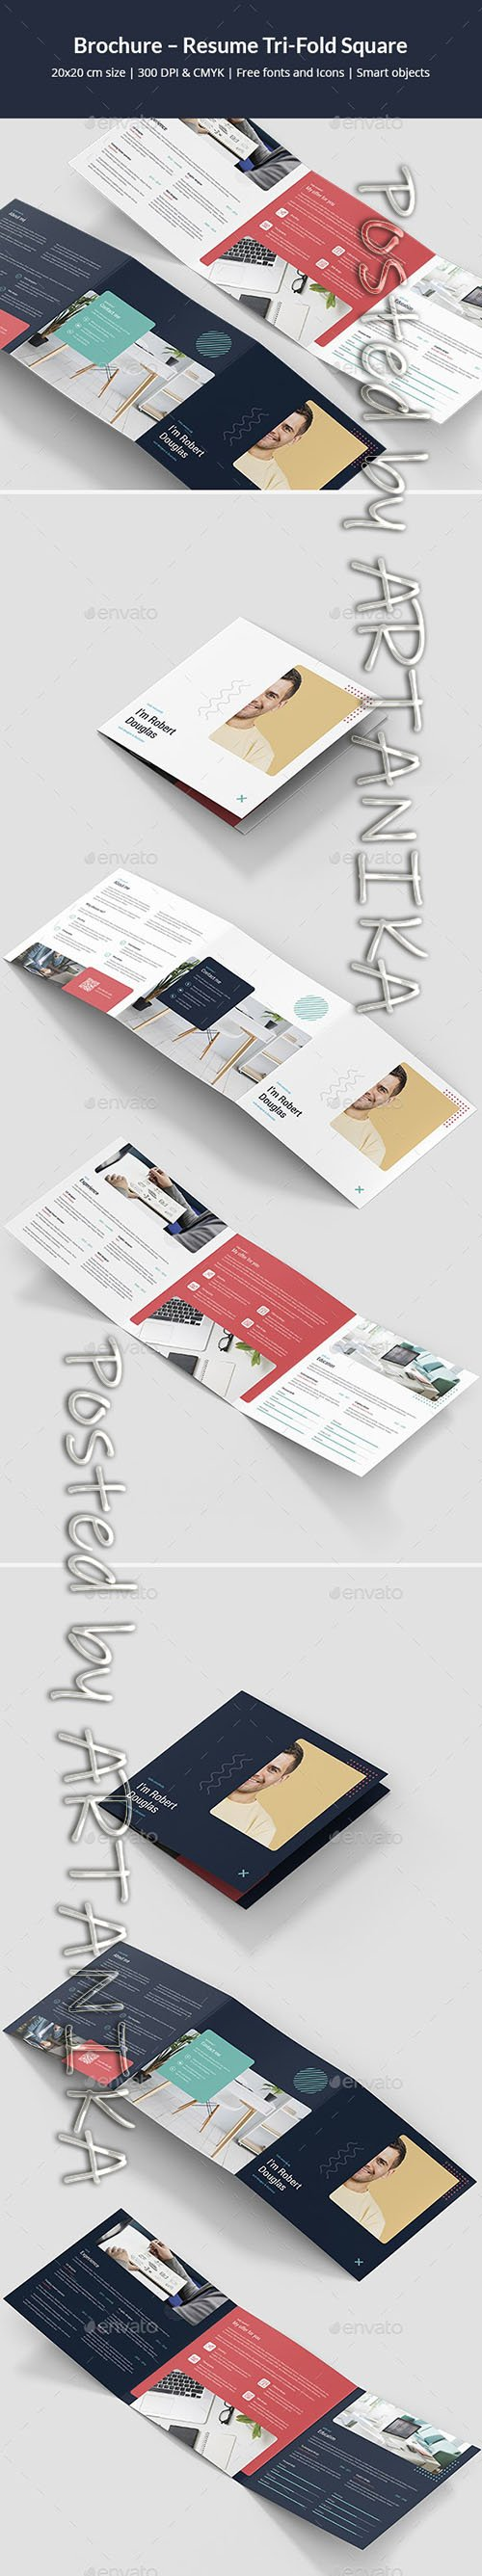 Brochure  Resume Tri-Fold Square 24770880